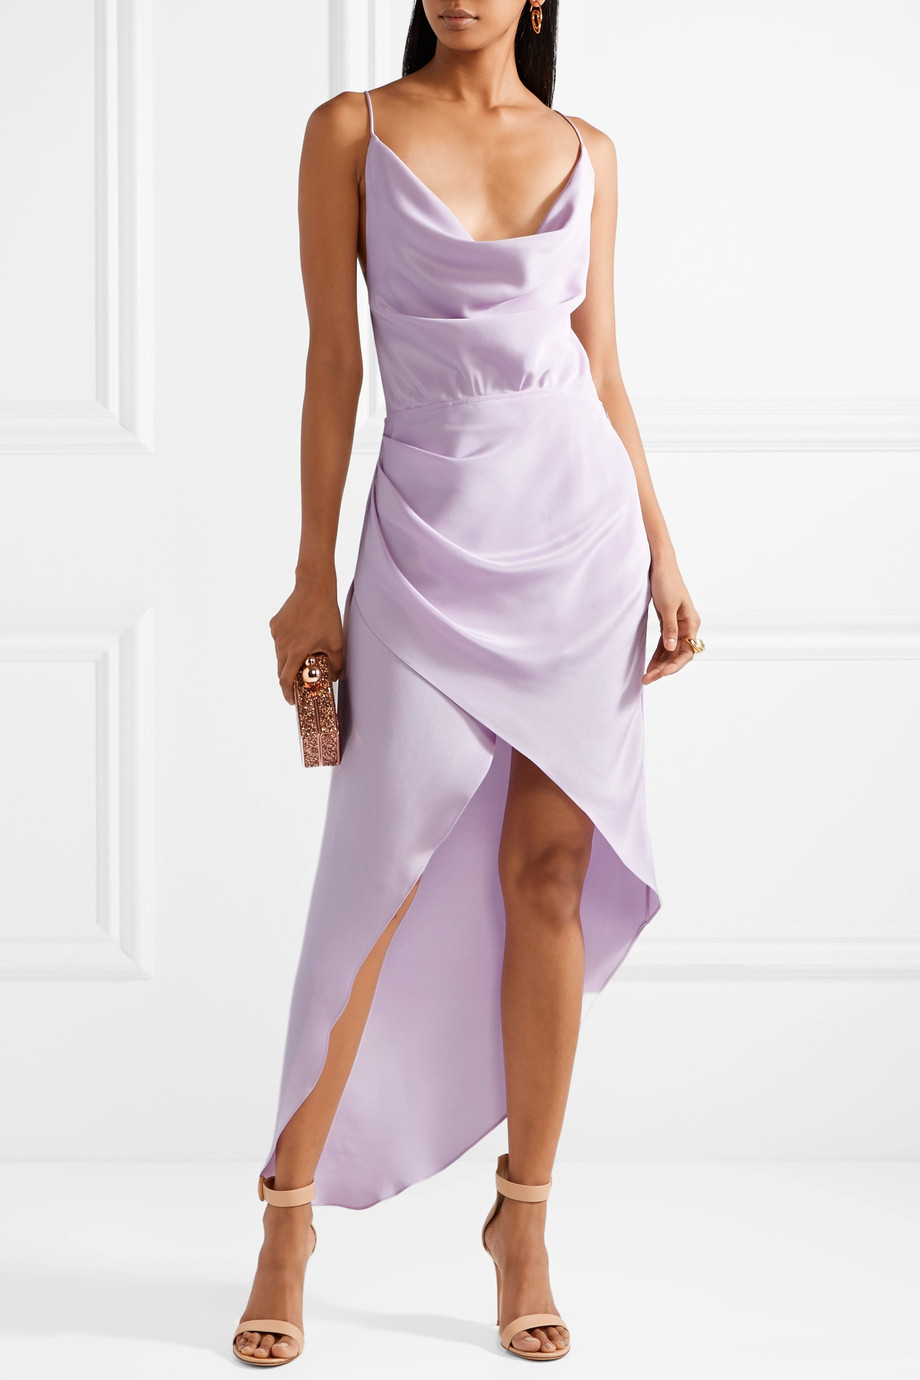 9 dresses that indicate that the mauve color will be a ...